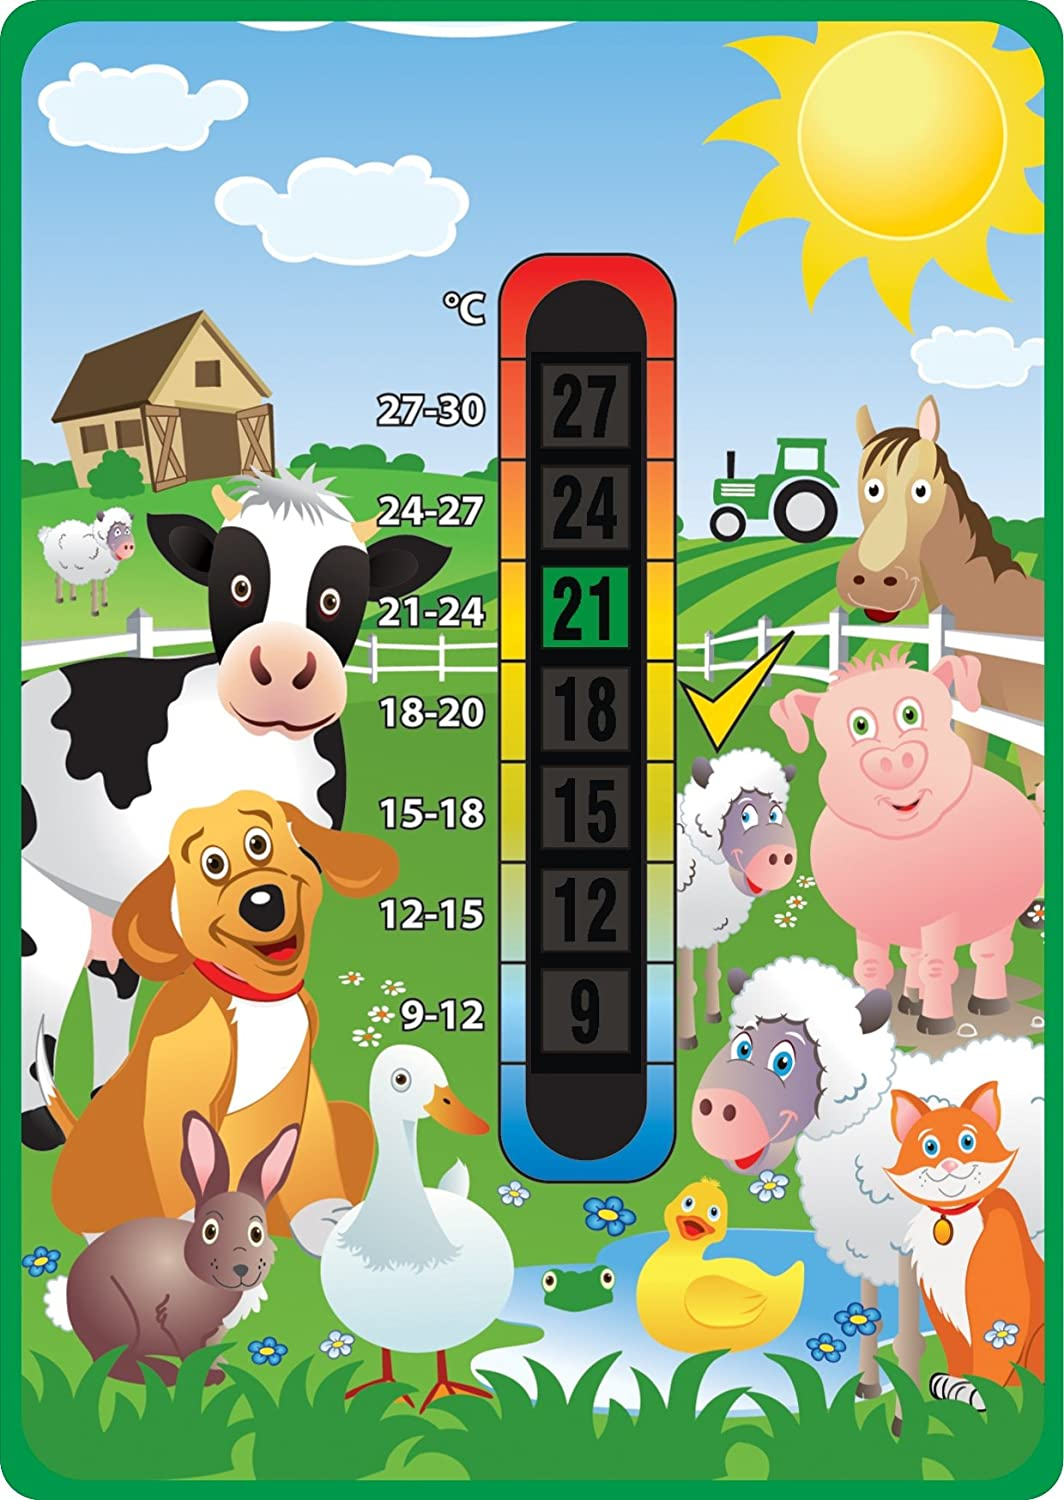 Happy Family Farm Animals Baby Nursery & Room Safety Temperature Thermometer Good Life Innovations